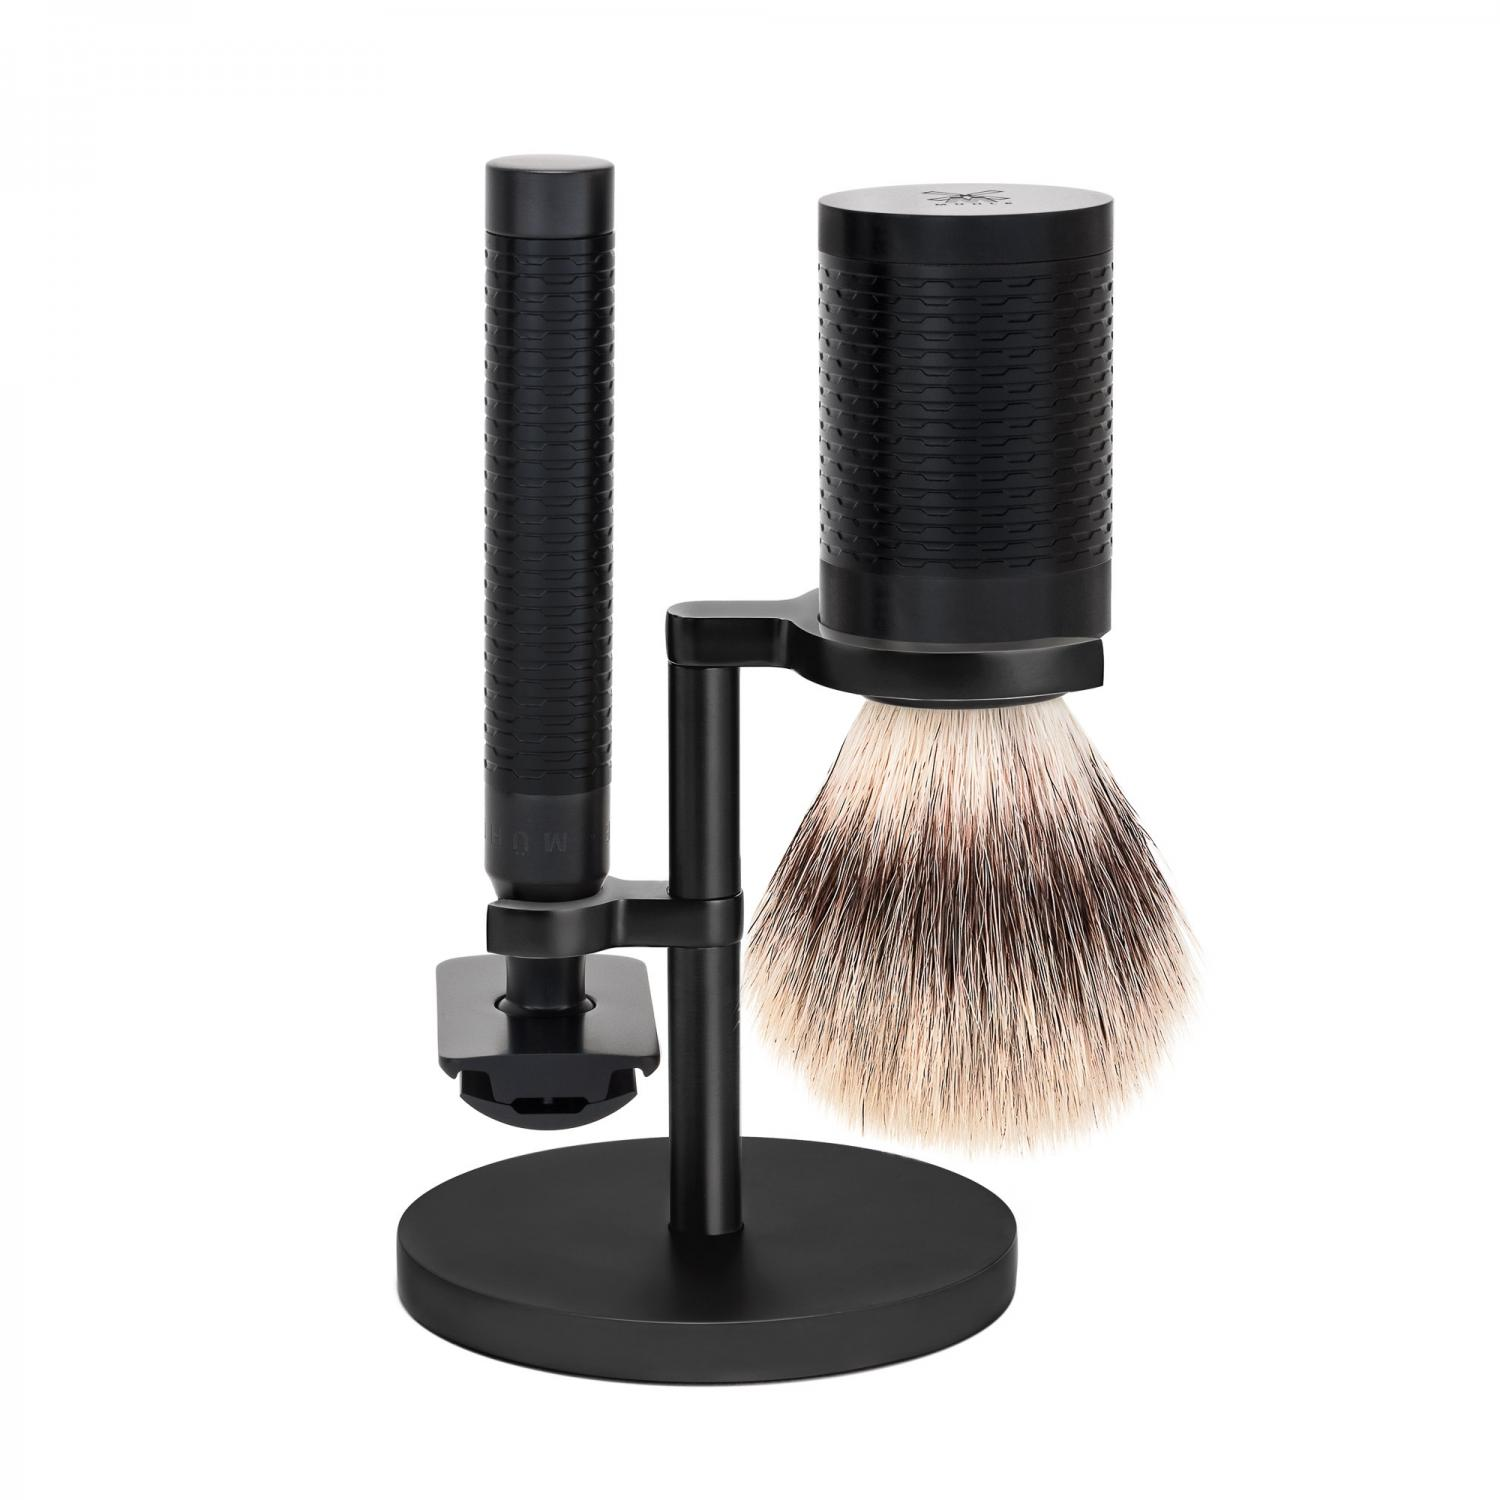 MÜHLE ROCCA Black Stainless Steel 3-Piece Silvertip Fibre/Safety Razor Shaving Set